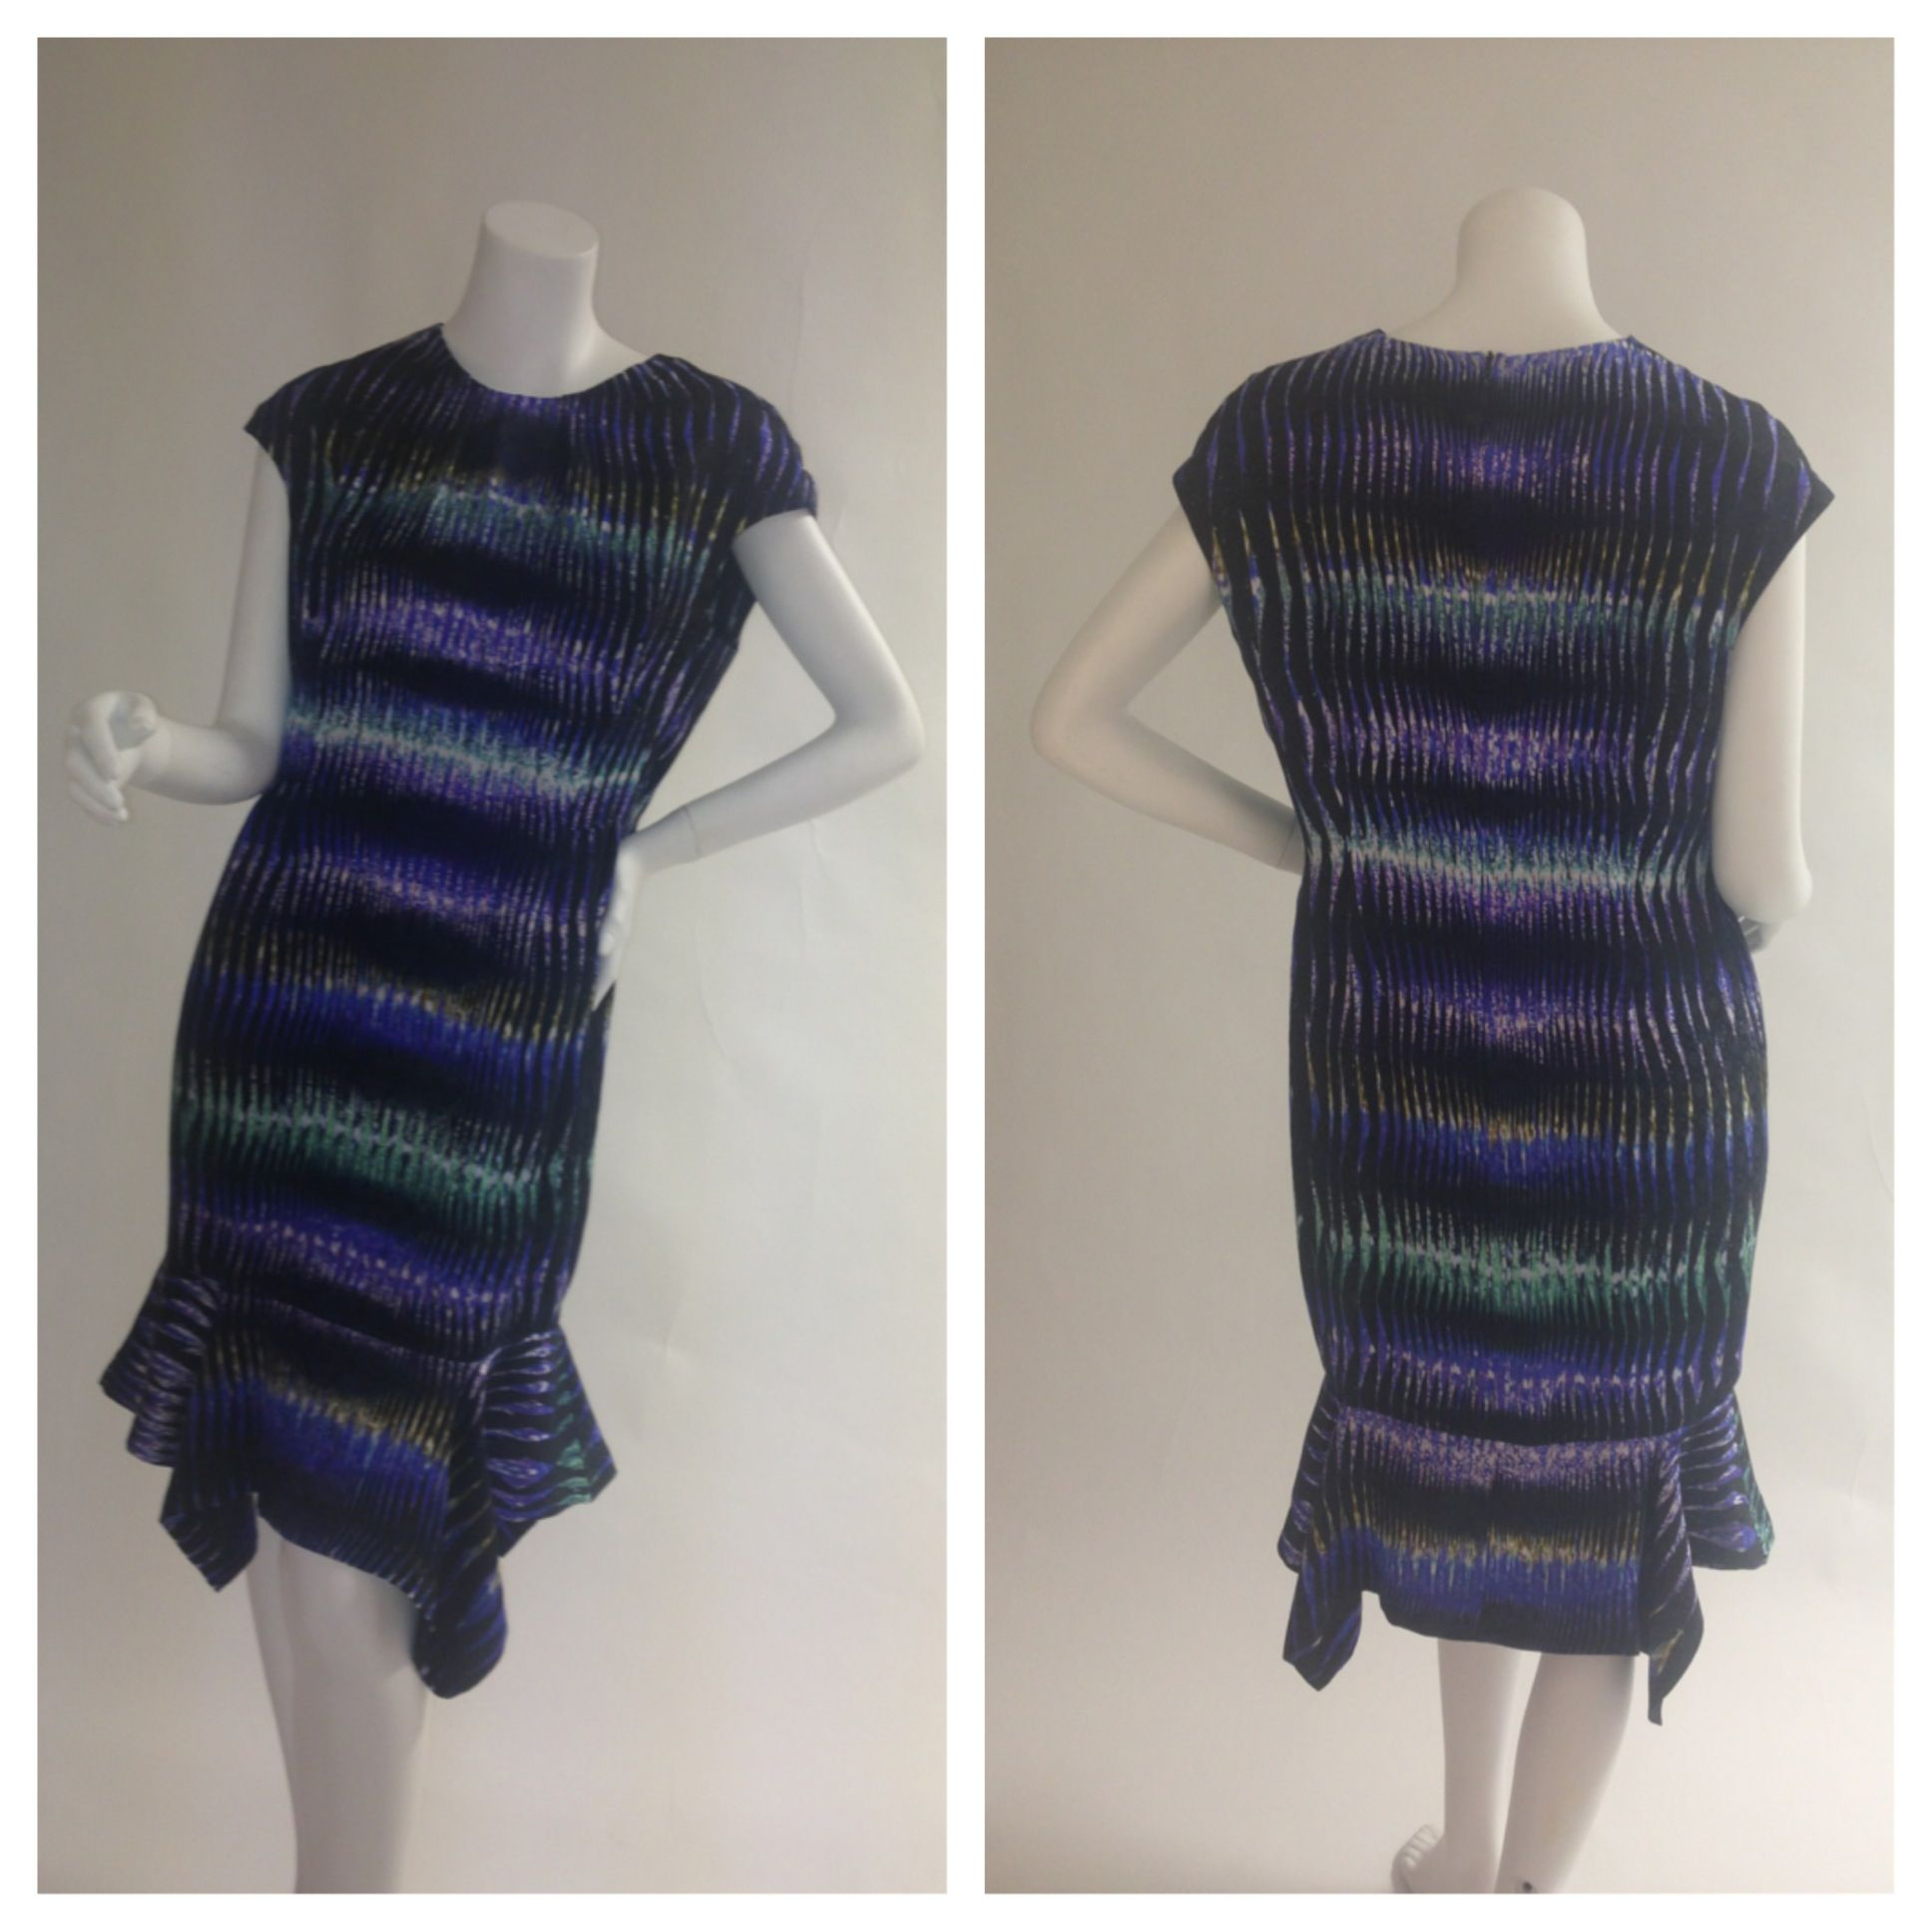 This gorgeous dress is from the (authentic) Peter Pilotto collection. The vibrant pattern and luxurious fabrics used to create this masterpiece are a true testament of his work. Size: US 10 Glamdrobe's price: $395  #peterpilotto #dress #designer #luxury #patterns #elegant #instaglam #glamdrobe